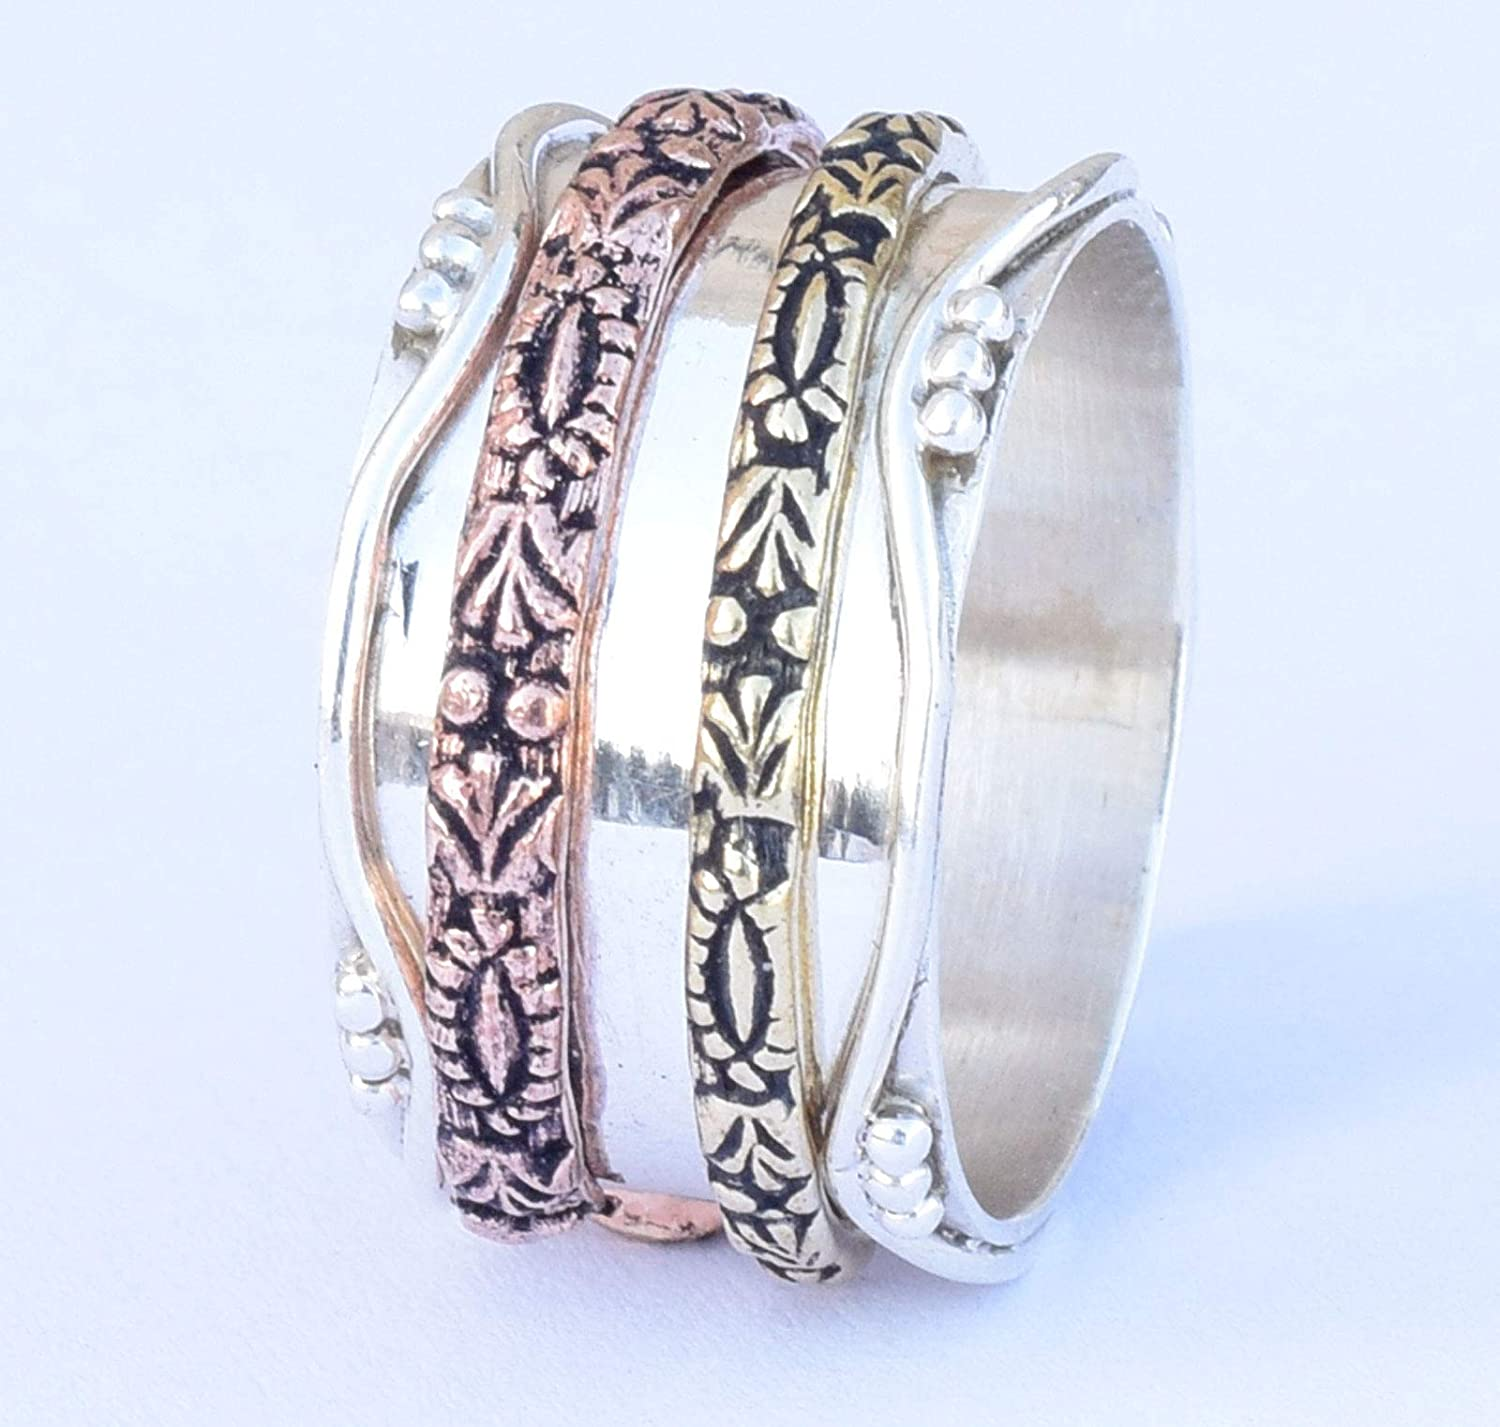 Amazon.com: Spin Spinner Ring, Yoga meditation Ring Two Tone ...